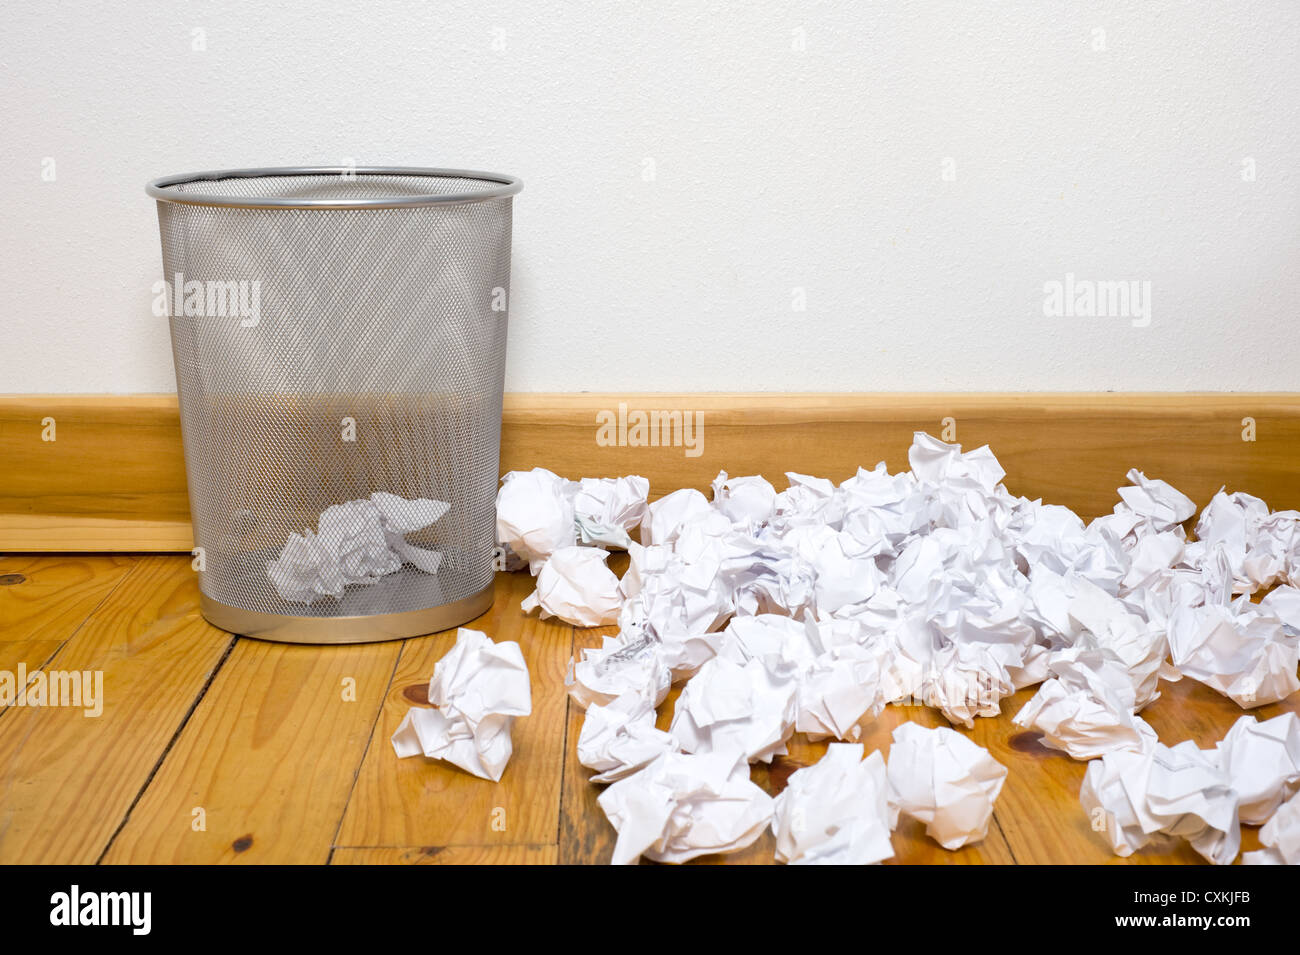 a wire mesh office trash can with crumpled paper on a wooden floor with a white wall, includes copy space - Stock Image